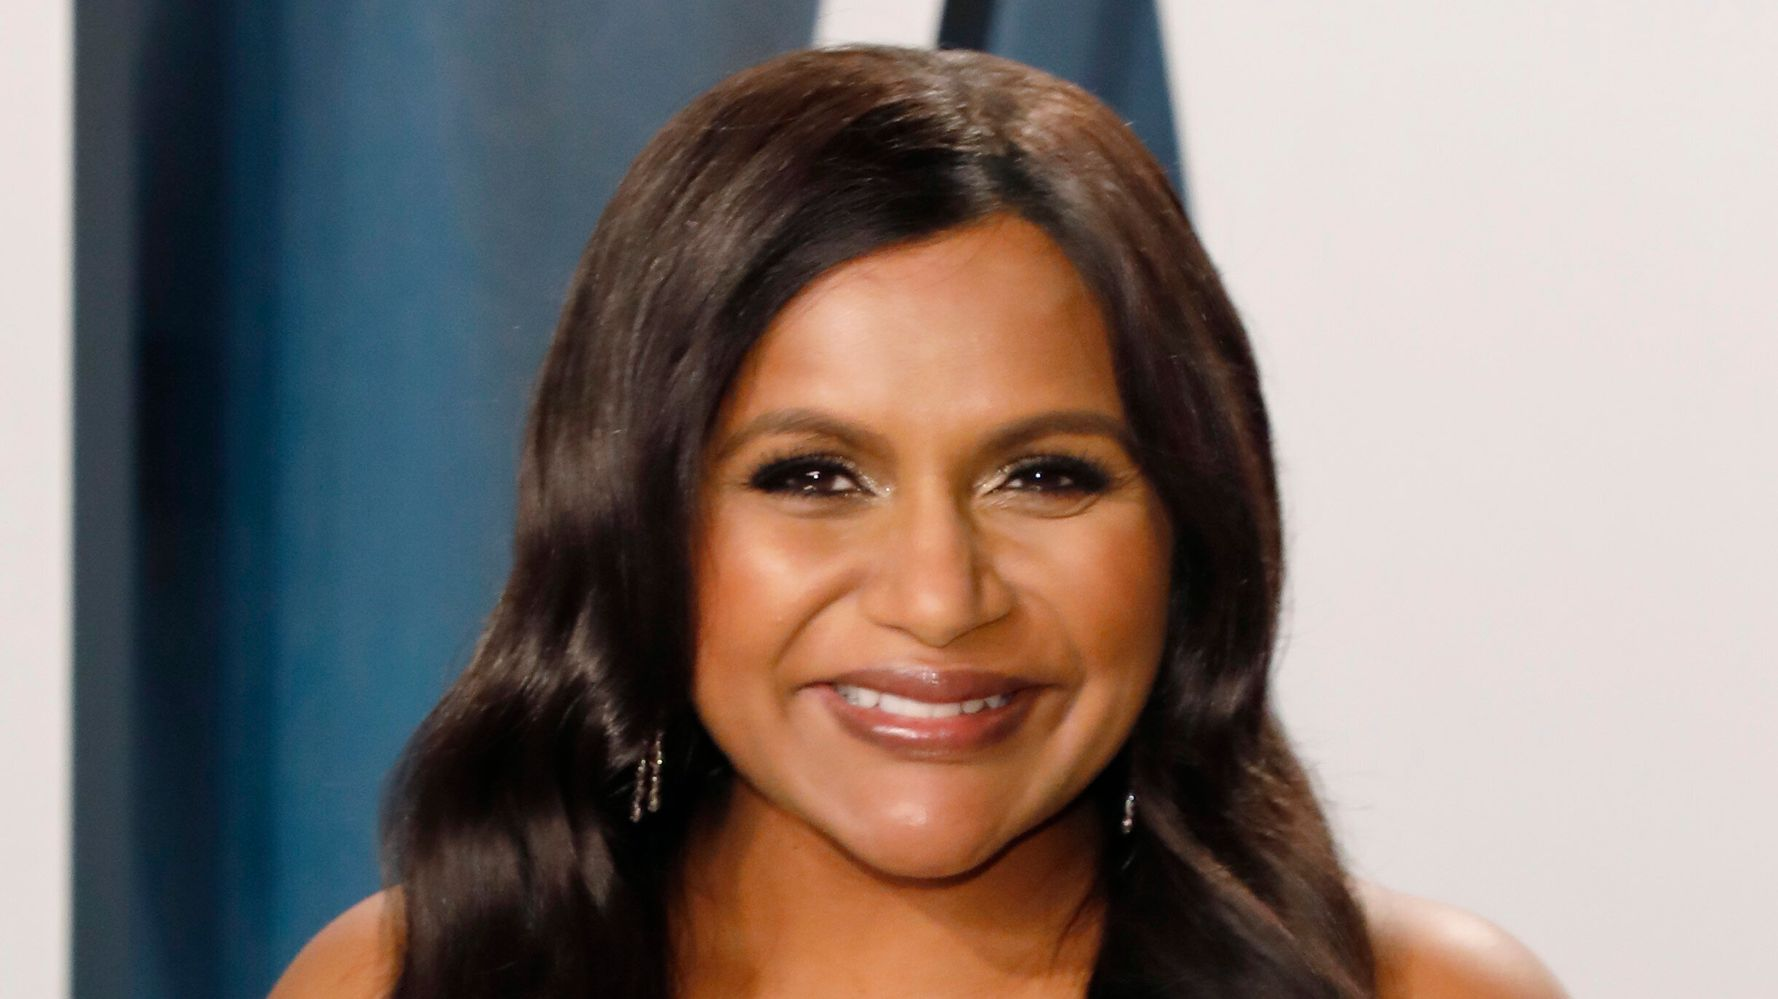 Mindy Kaling Dressed Up As 'Never Have I Ever' Character Is Perfection